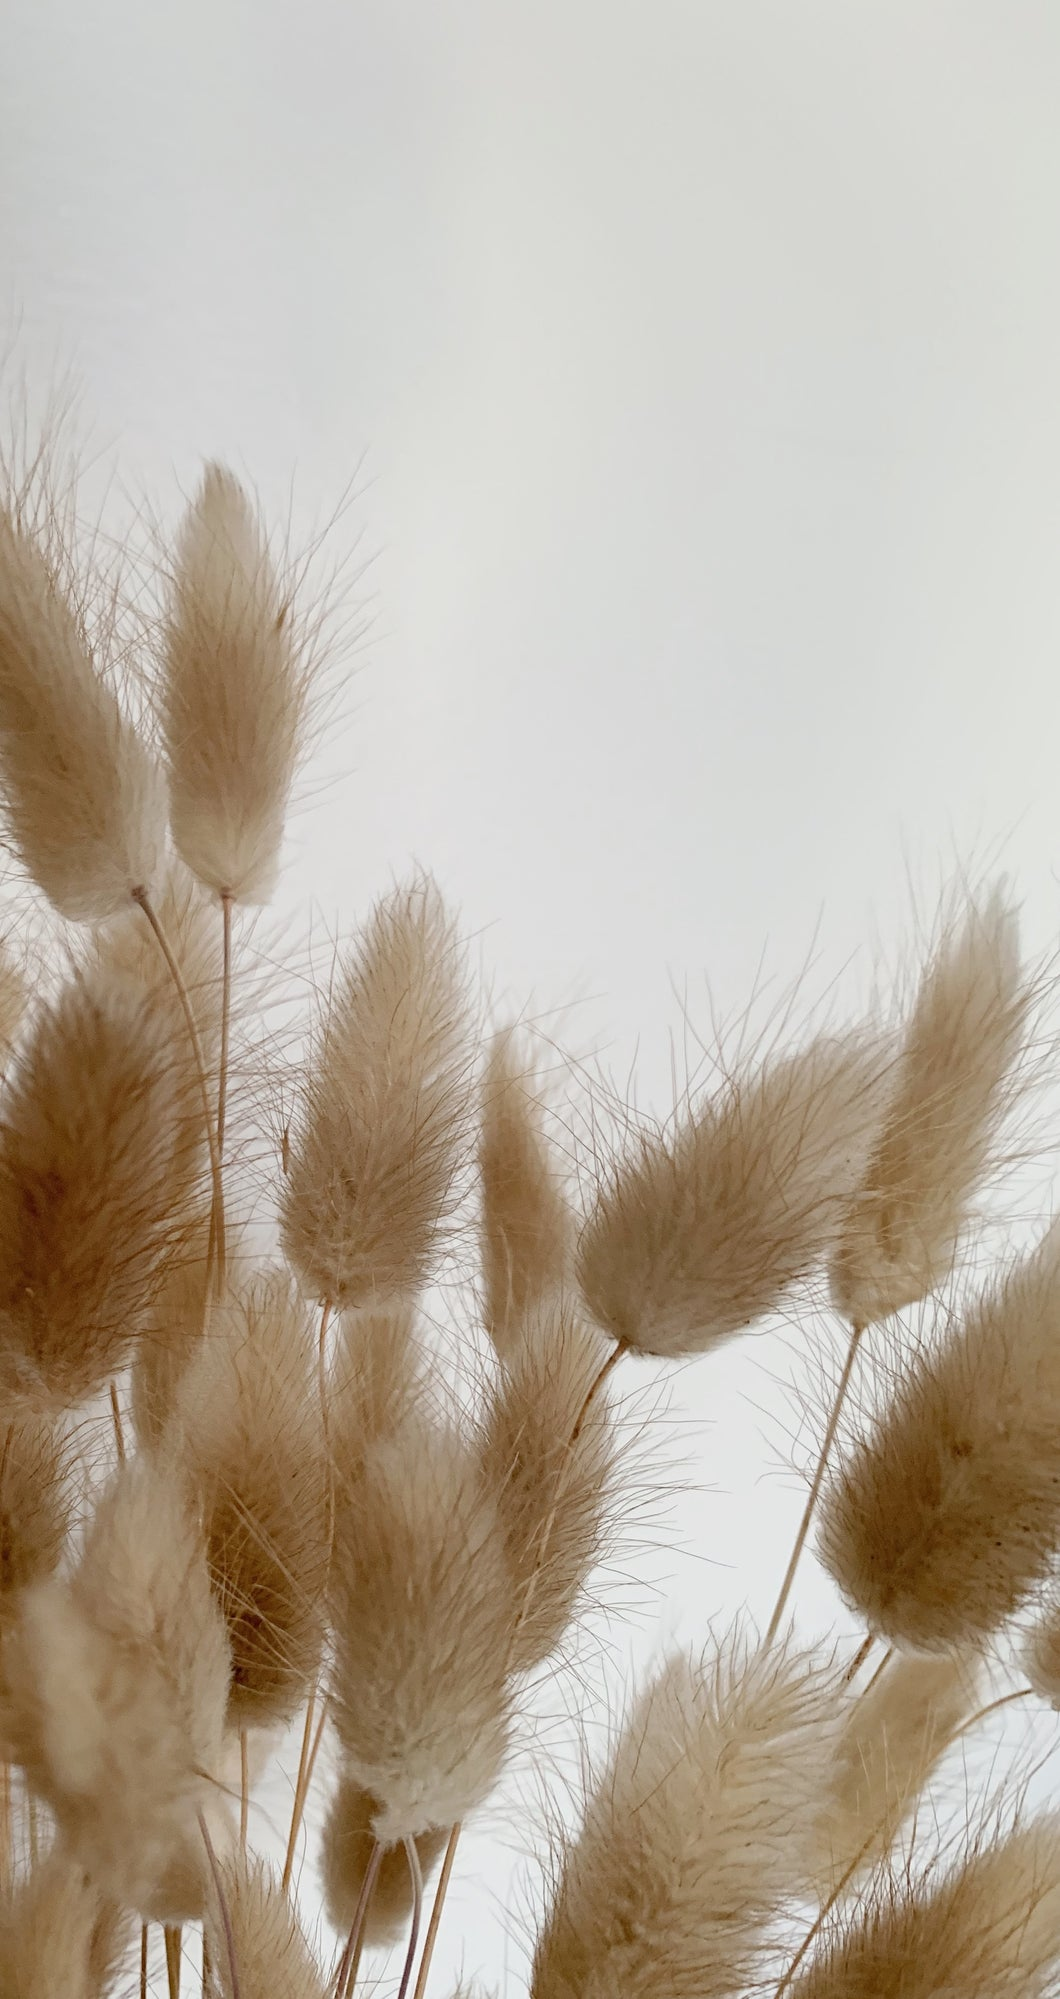 Natural Bunny Tails Wallpaper I